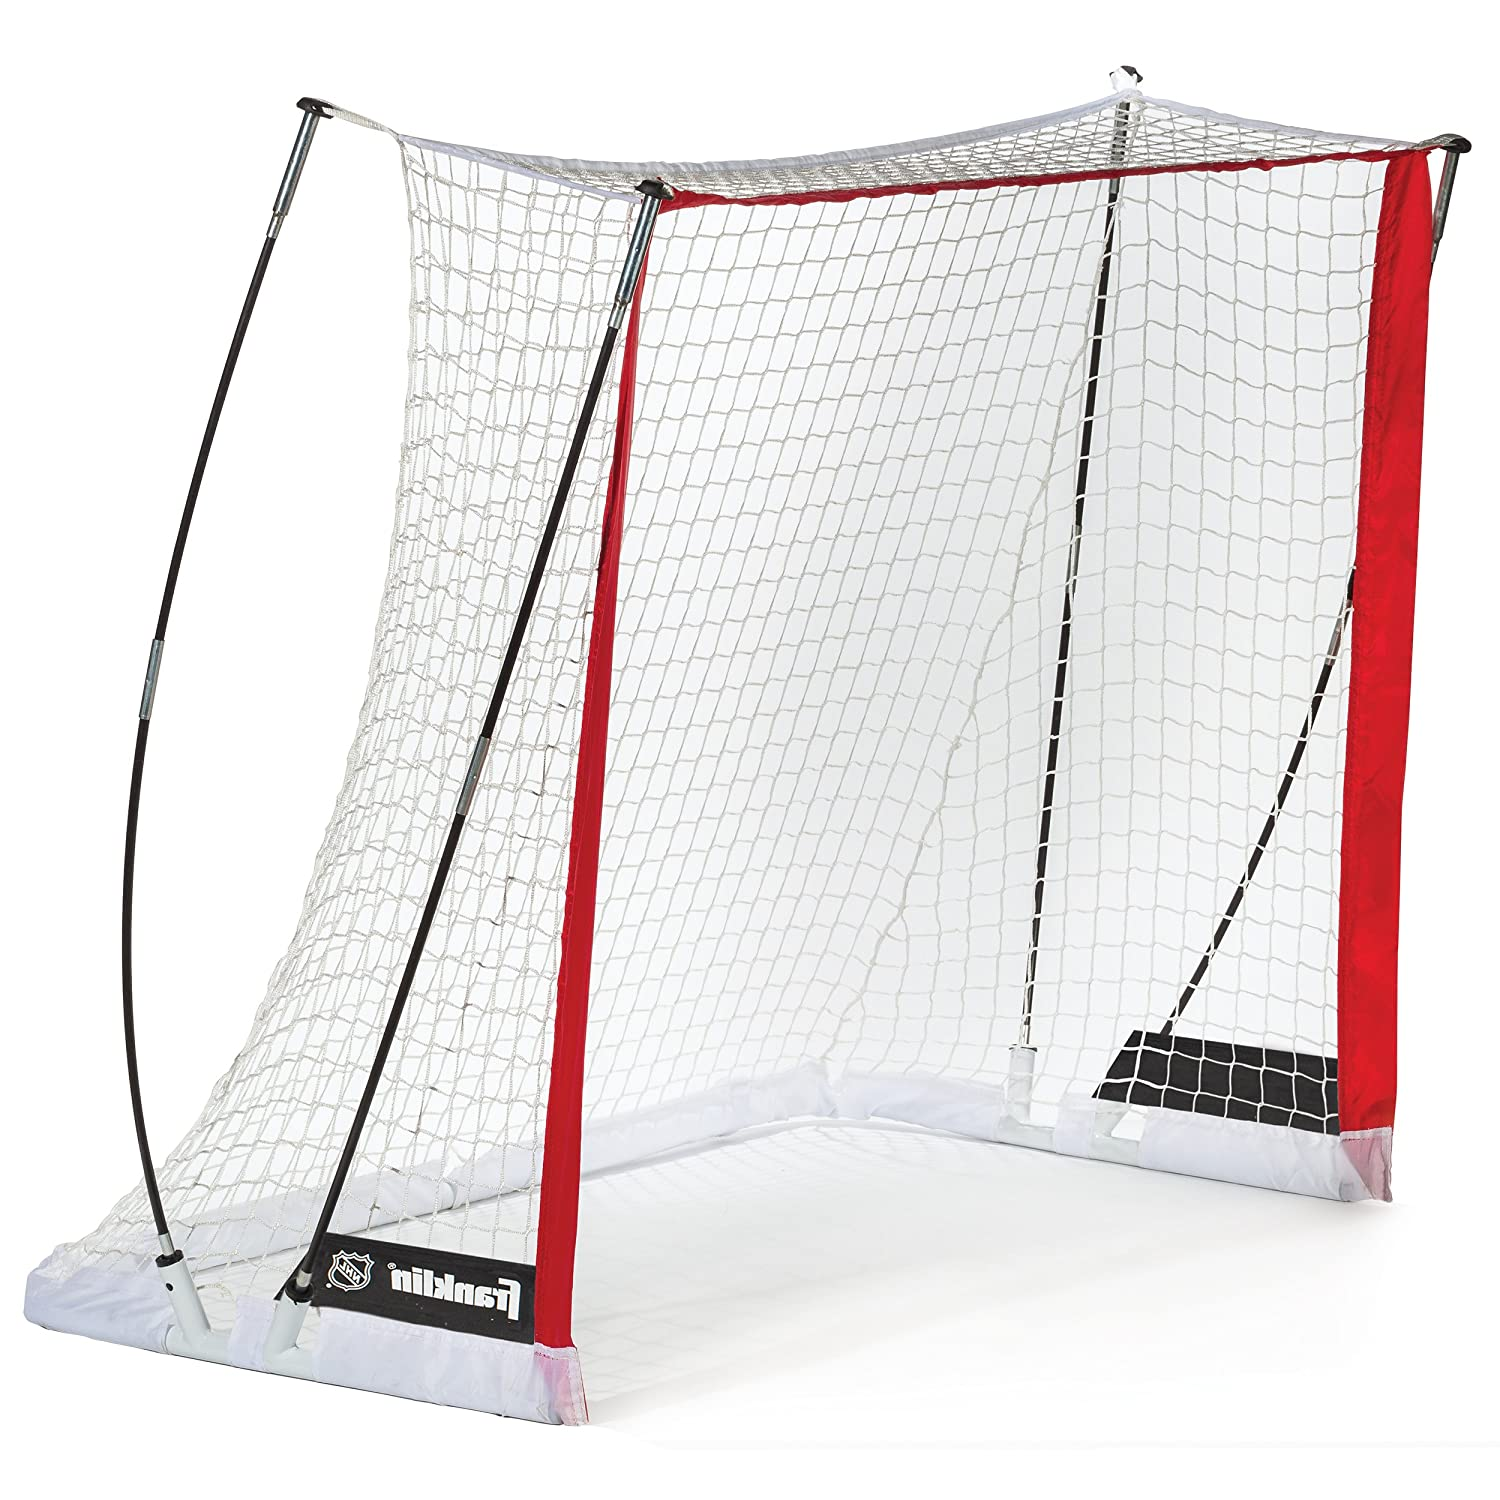 Franklin Sports FiberTech Street Hockey Goal Set